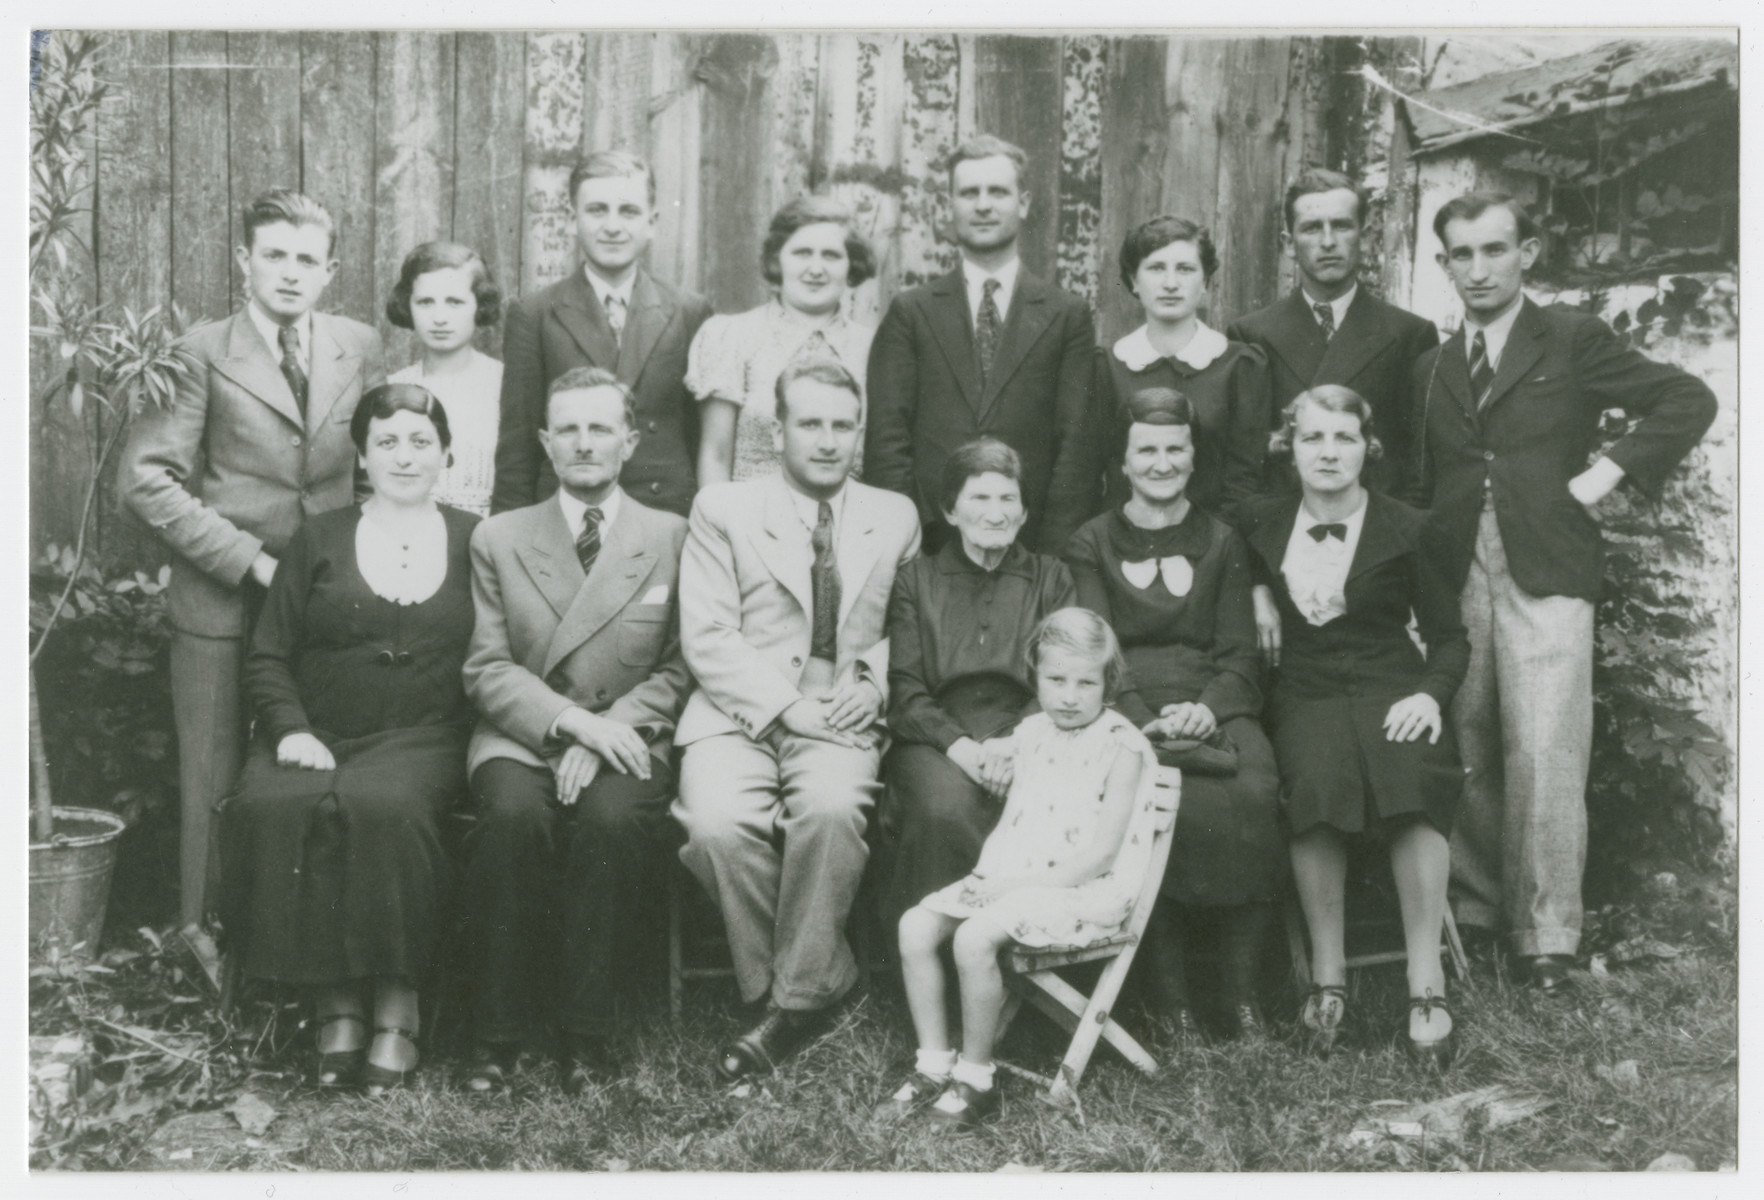 Prewar portrait of the extended Ring family in Krzepice, Poland.  Pictured left to right are front row: Sura Fajga Ring, Zeleg Ring, Russell Ring, Sura Ring, Brindel Ring and Deborah Ring.  The young girl in front is Mania Ring.  Back row: Henoch Ring, Henia Ring, Chemya Rosen, Srul Rosen, Liah Rosen, Etcho Rosen and Mendel Ring.